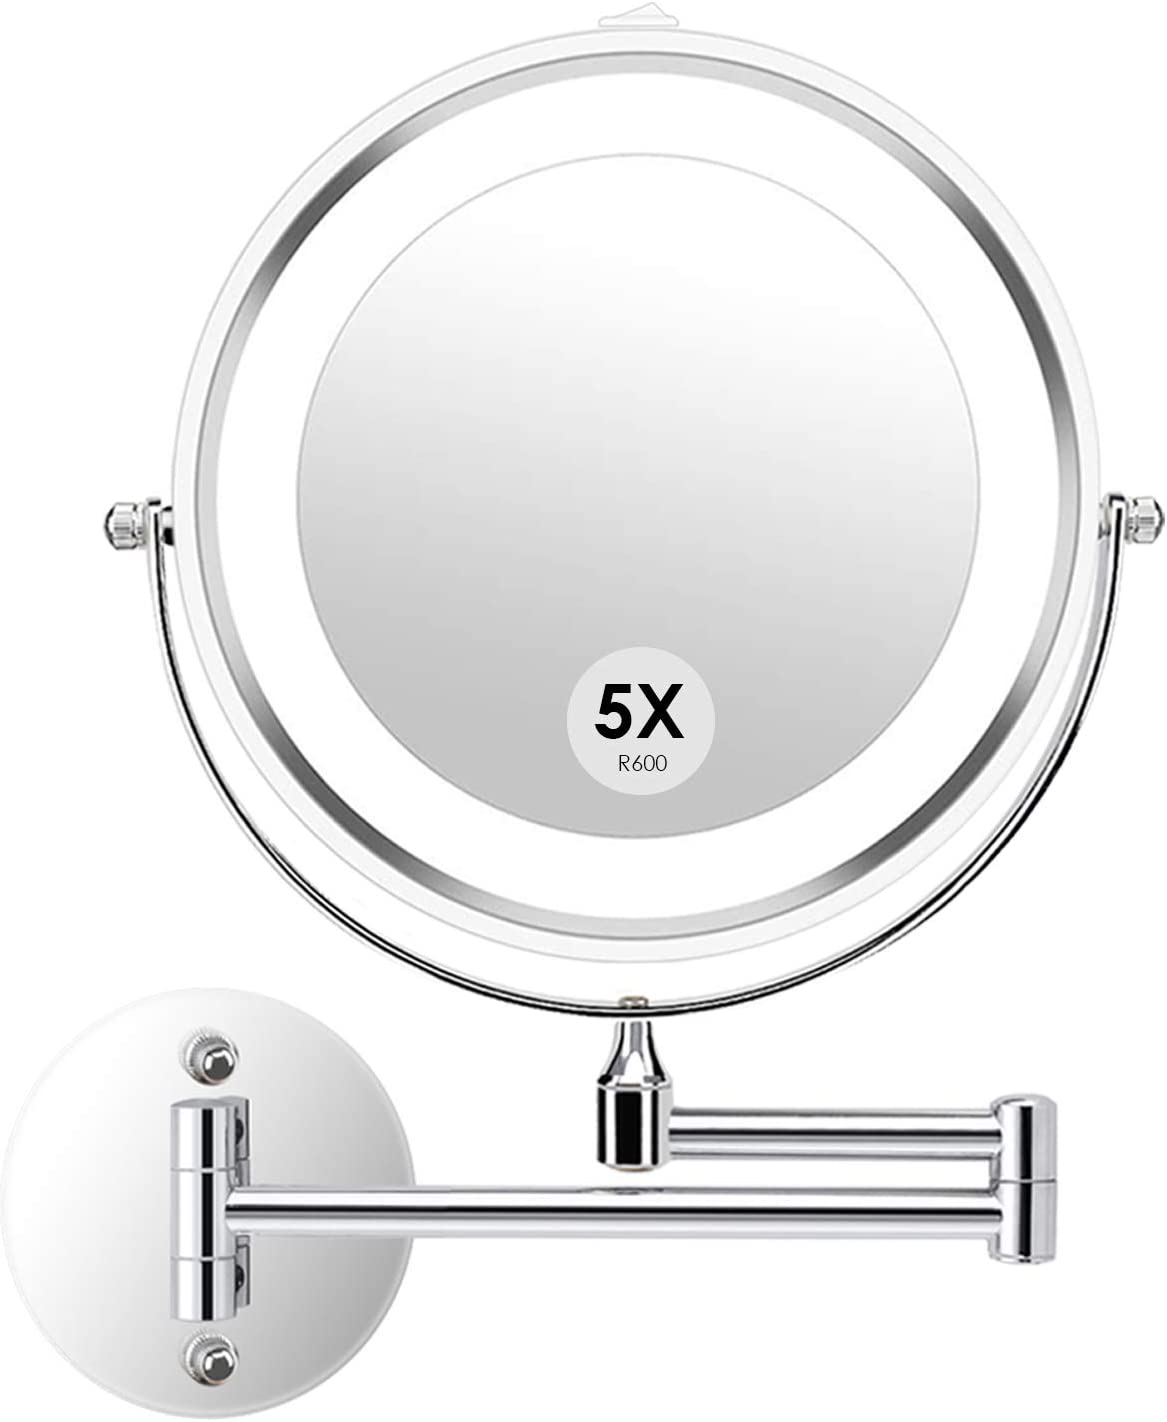 Alvorog Wall Mounted Makeup Mirror Led Lighted Double Sided 5x Magnification 360 Swivel Extendable Cosmetic Vanity Mirror For Bathroom Hotels Powered By Batteries Not Included 7 Inches Amazon Com